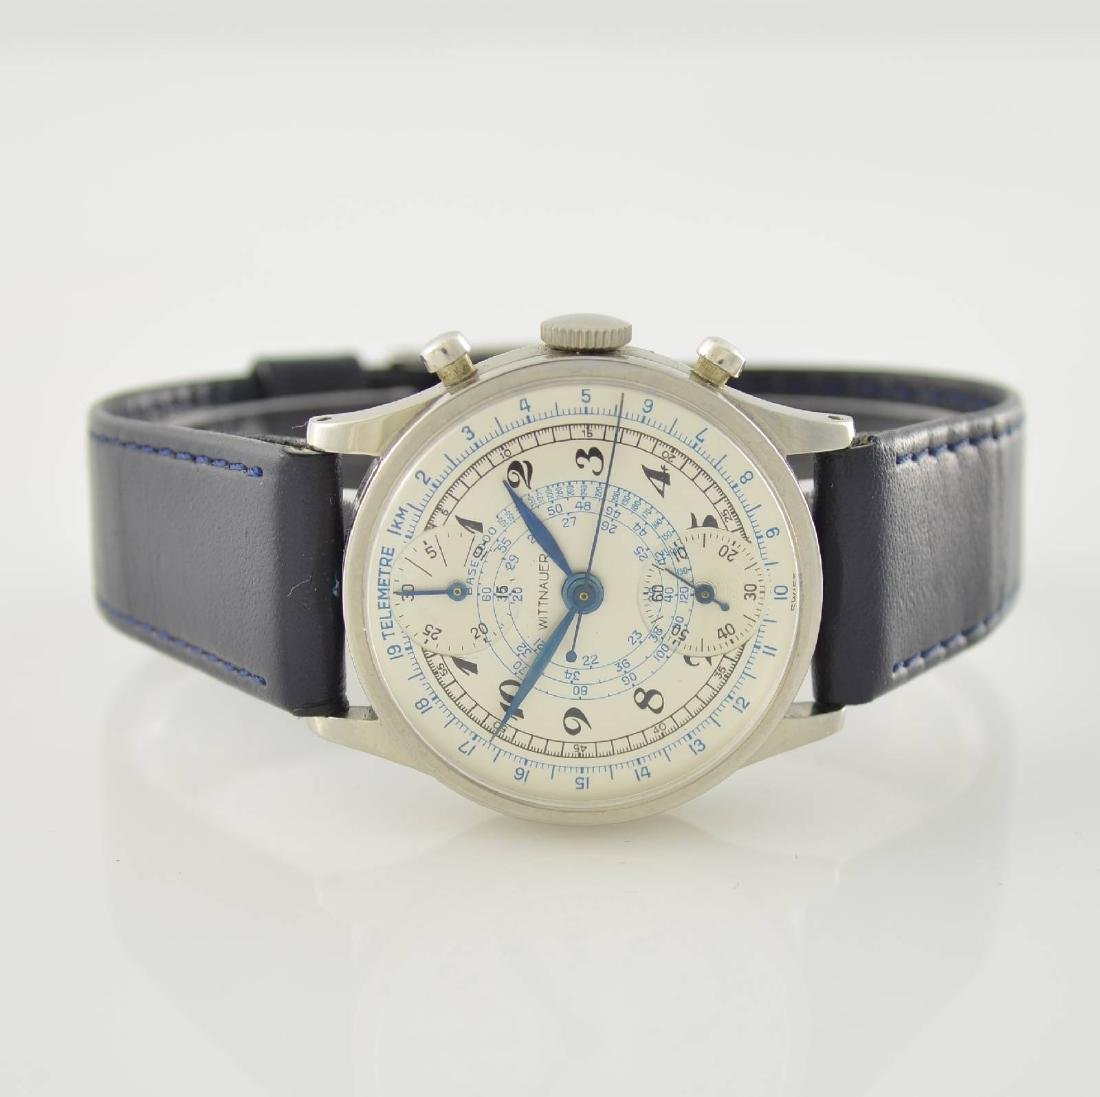 WITTNAUER gents wristwatch with chronograph in steel